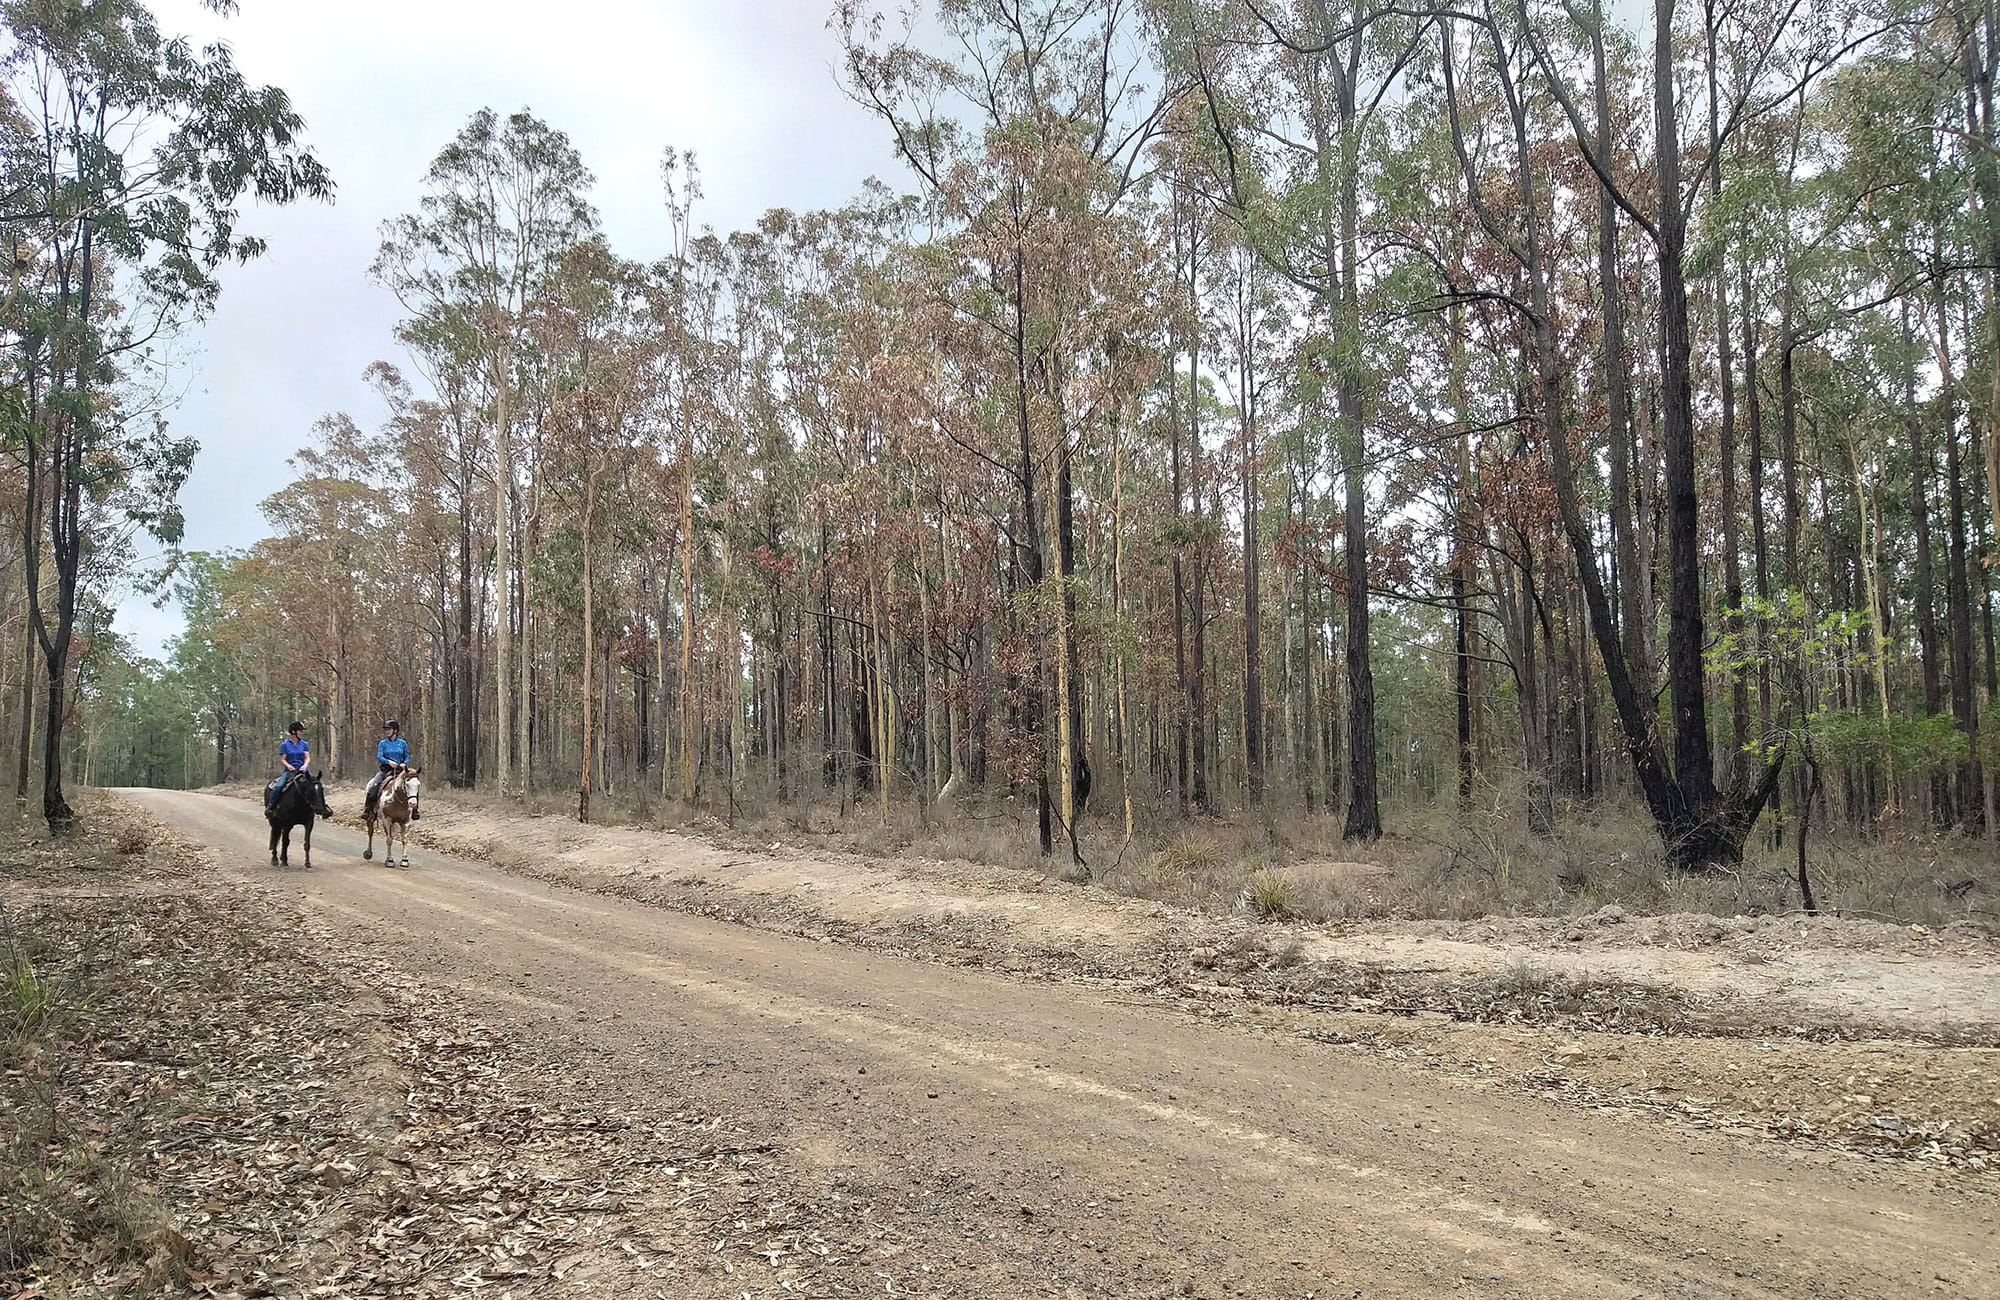 2 horse riders along Columbey horse riding trails in Columbey National Park. Photo: Liam Banyer © DPIE